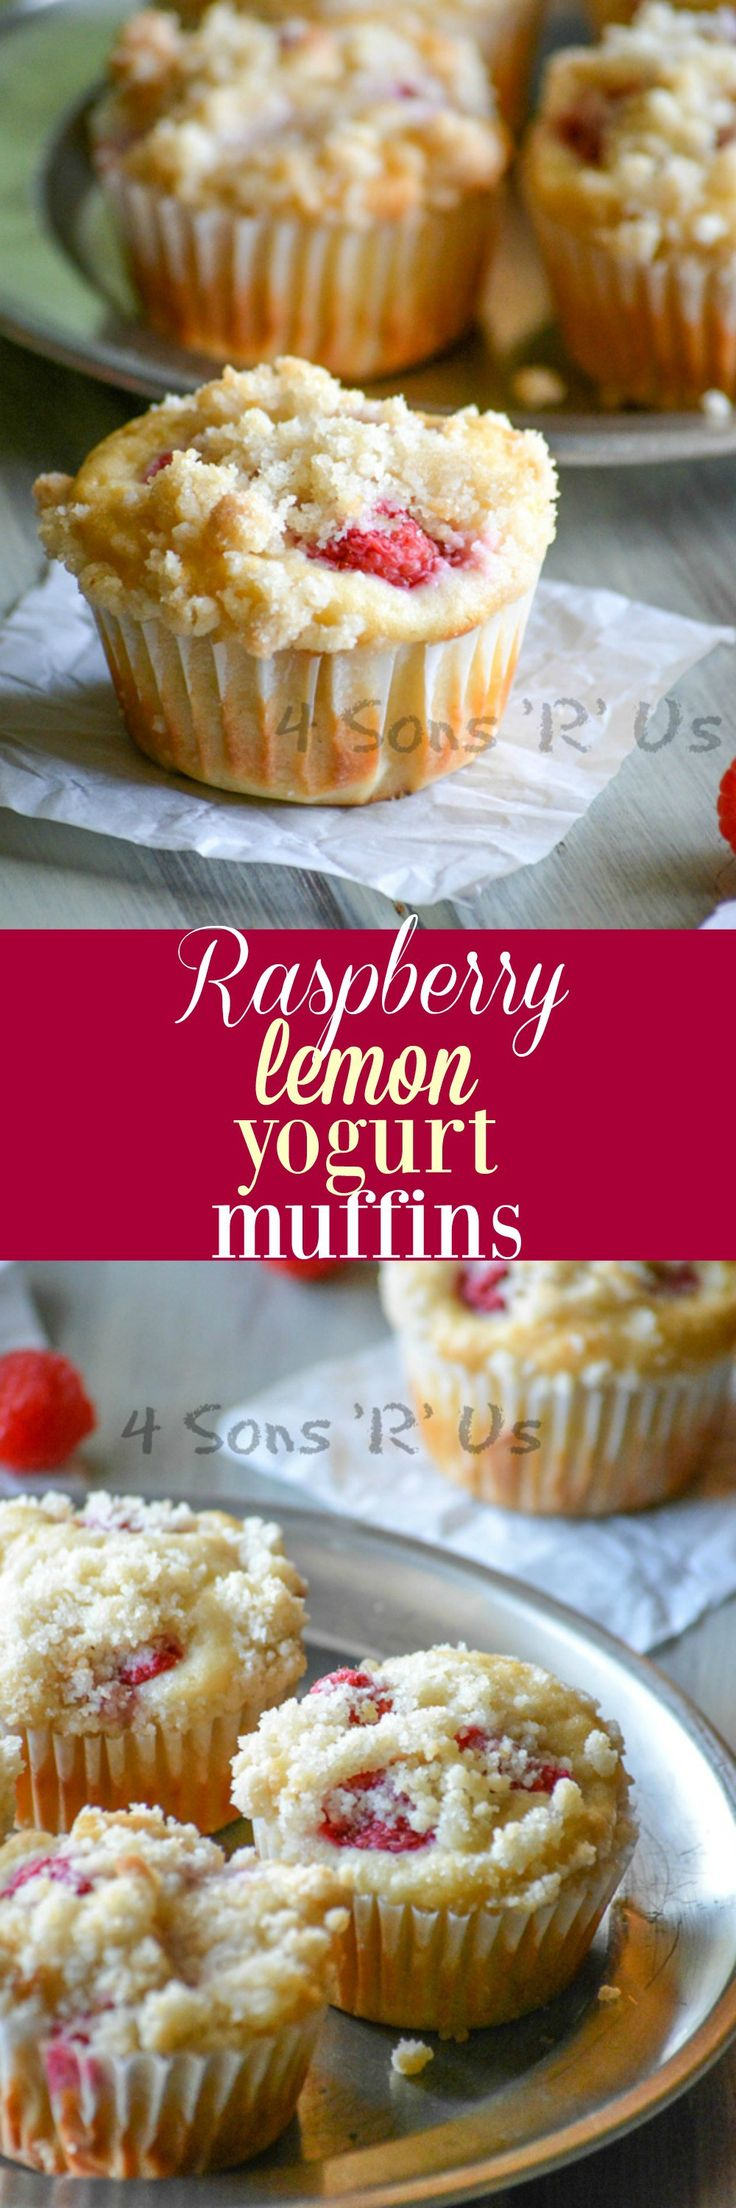 Mornings are hard, start your day off with a tasty grab-and-go breakfast treat. These Raspberry Lemon Yogurt Muffins will make any day just a little bit sweeter. Spring has finally sprung. The local weather may not know that though. Someone should shoot it a memo. It's sunny, warm by day, everything[Read more]